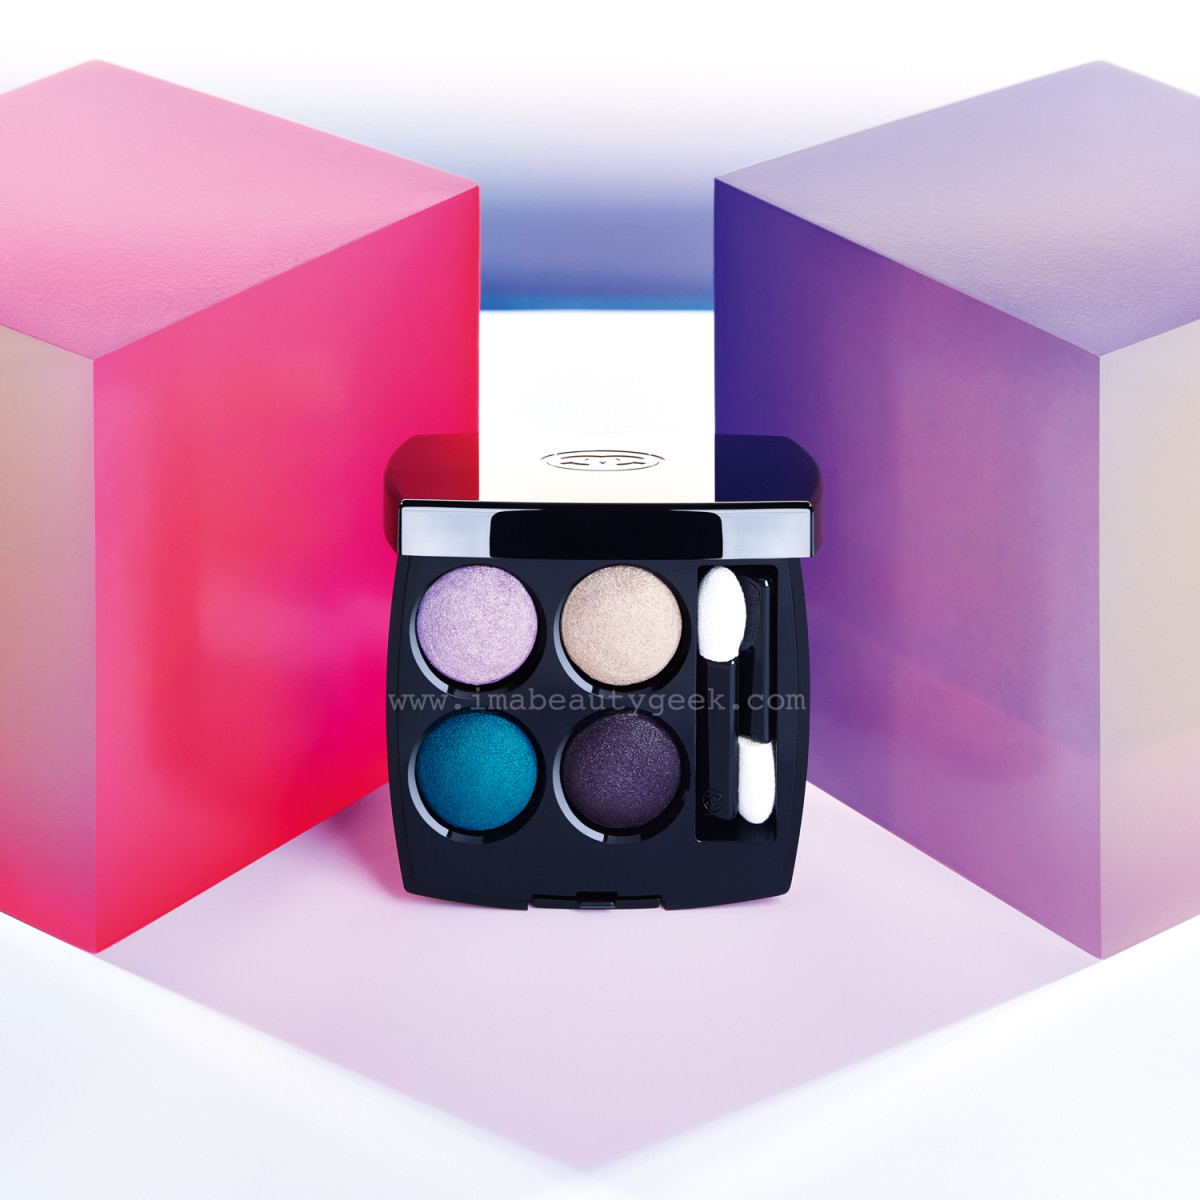 Chanel Spring 2015 LA Sunrise Collection: Les 4 Ombre eyeshadow quad in Beverly Hills